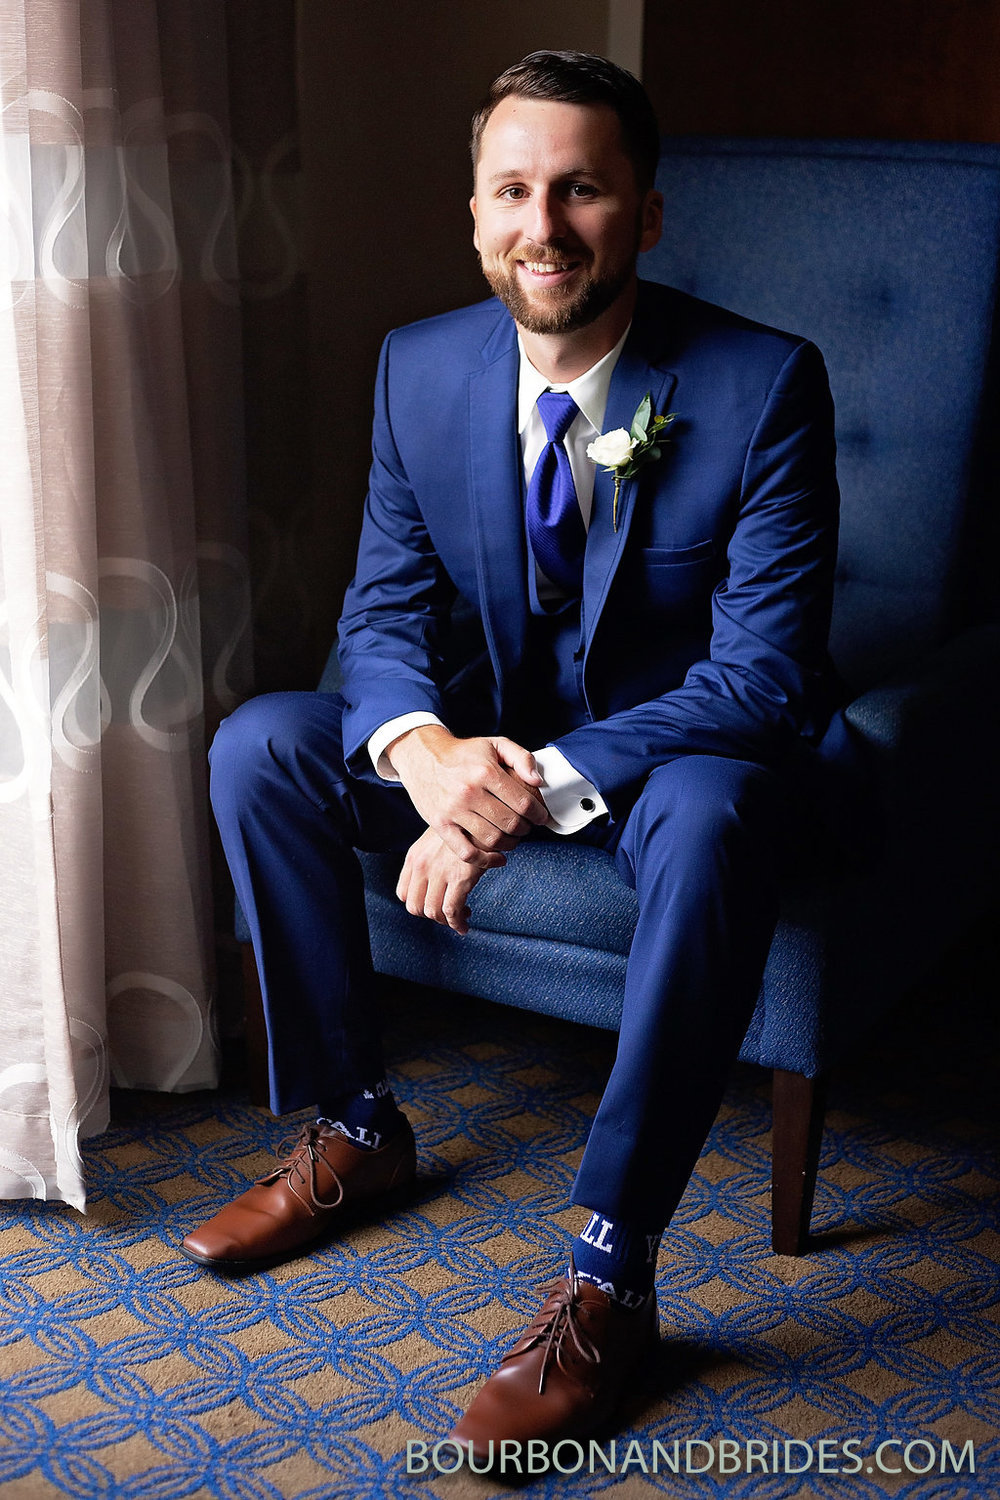 marriott-wedding-groom.jpg